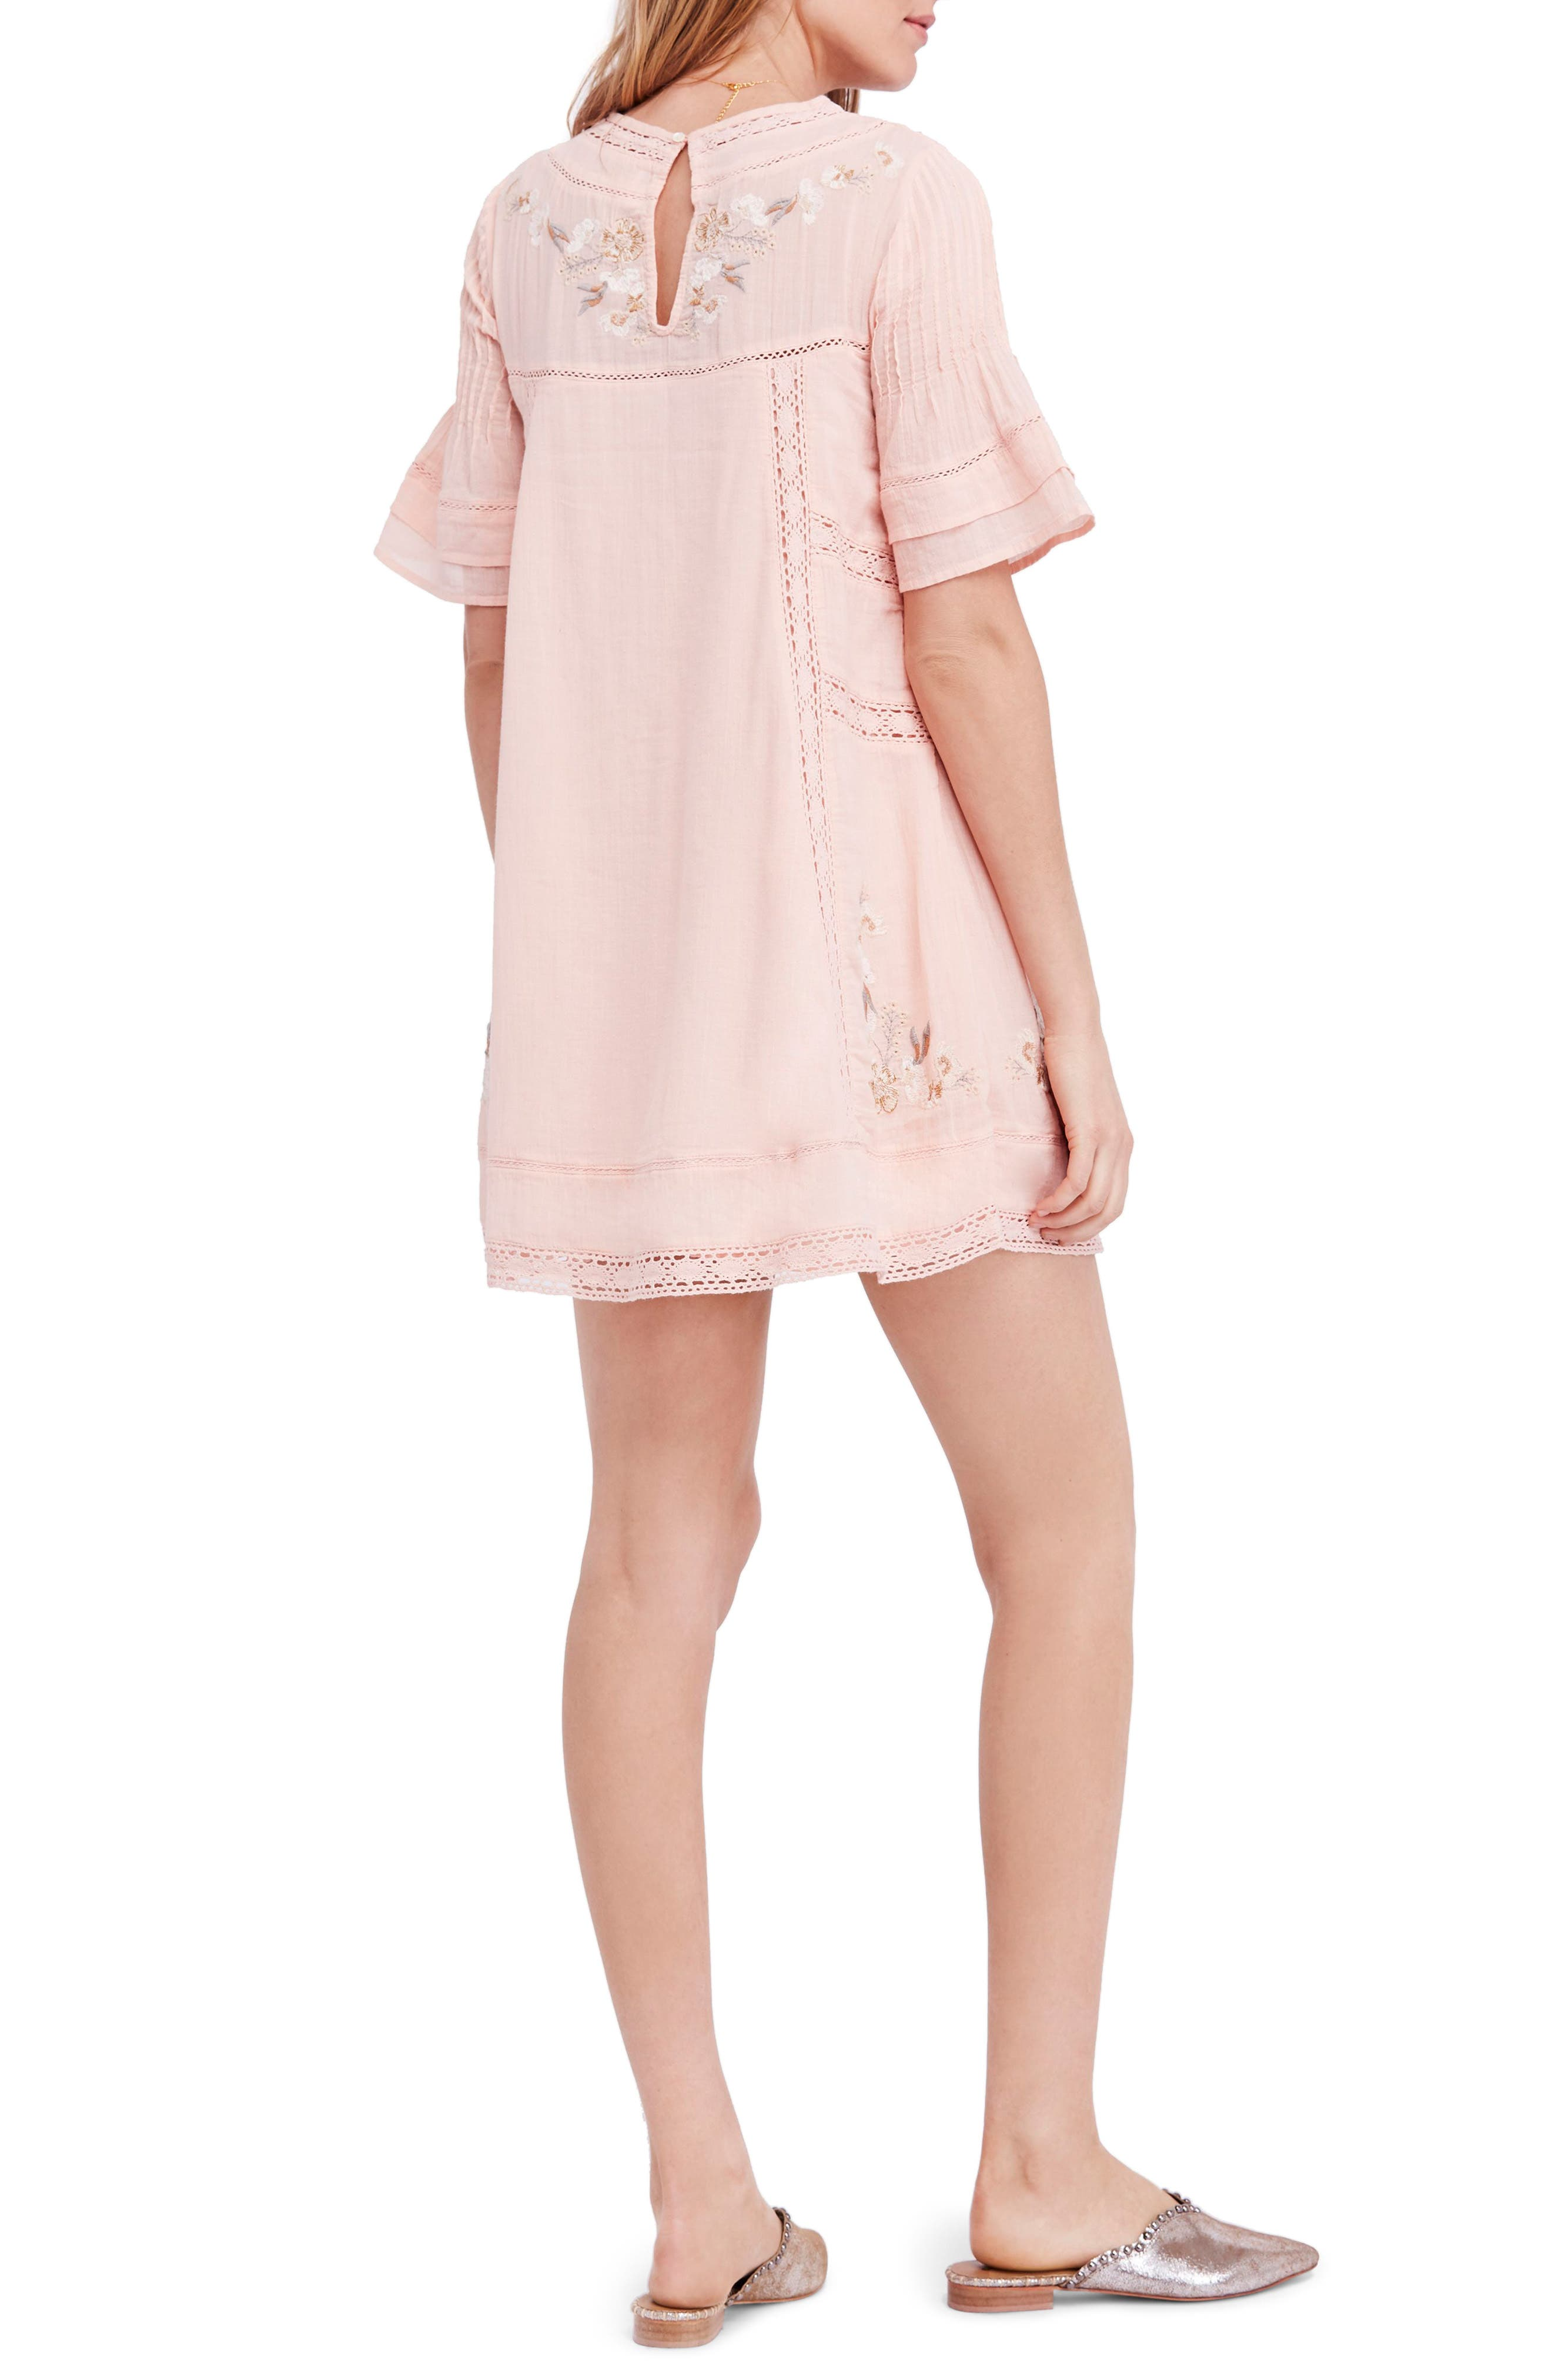 'Perfectly Victorian' Minidress,                             Alternate thumbnail 2, color,                             Pink